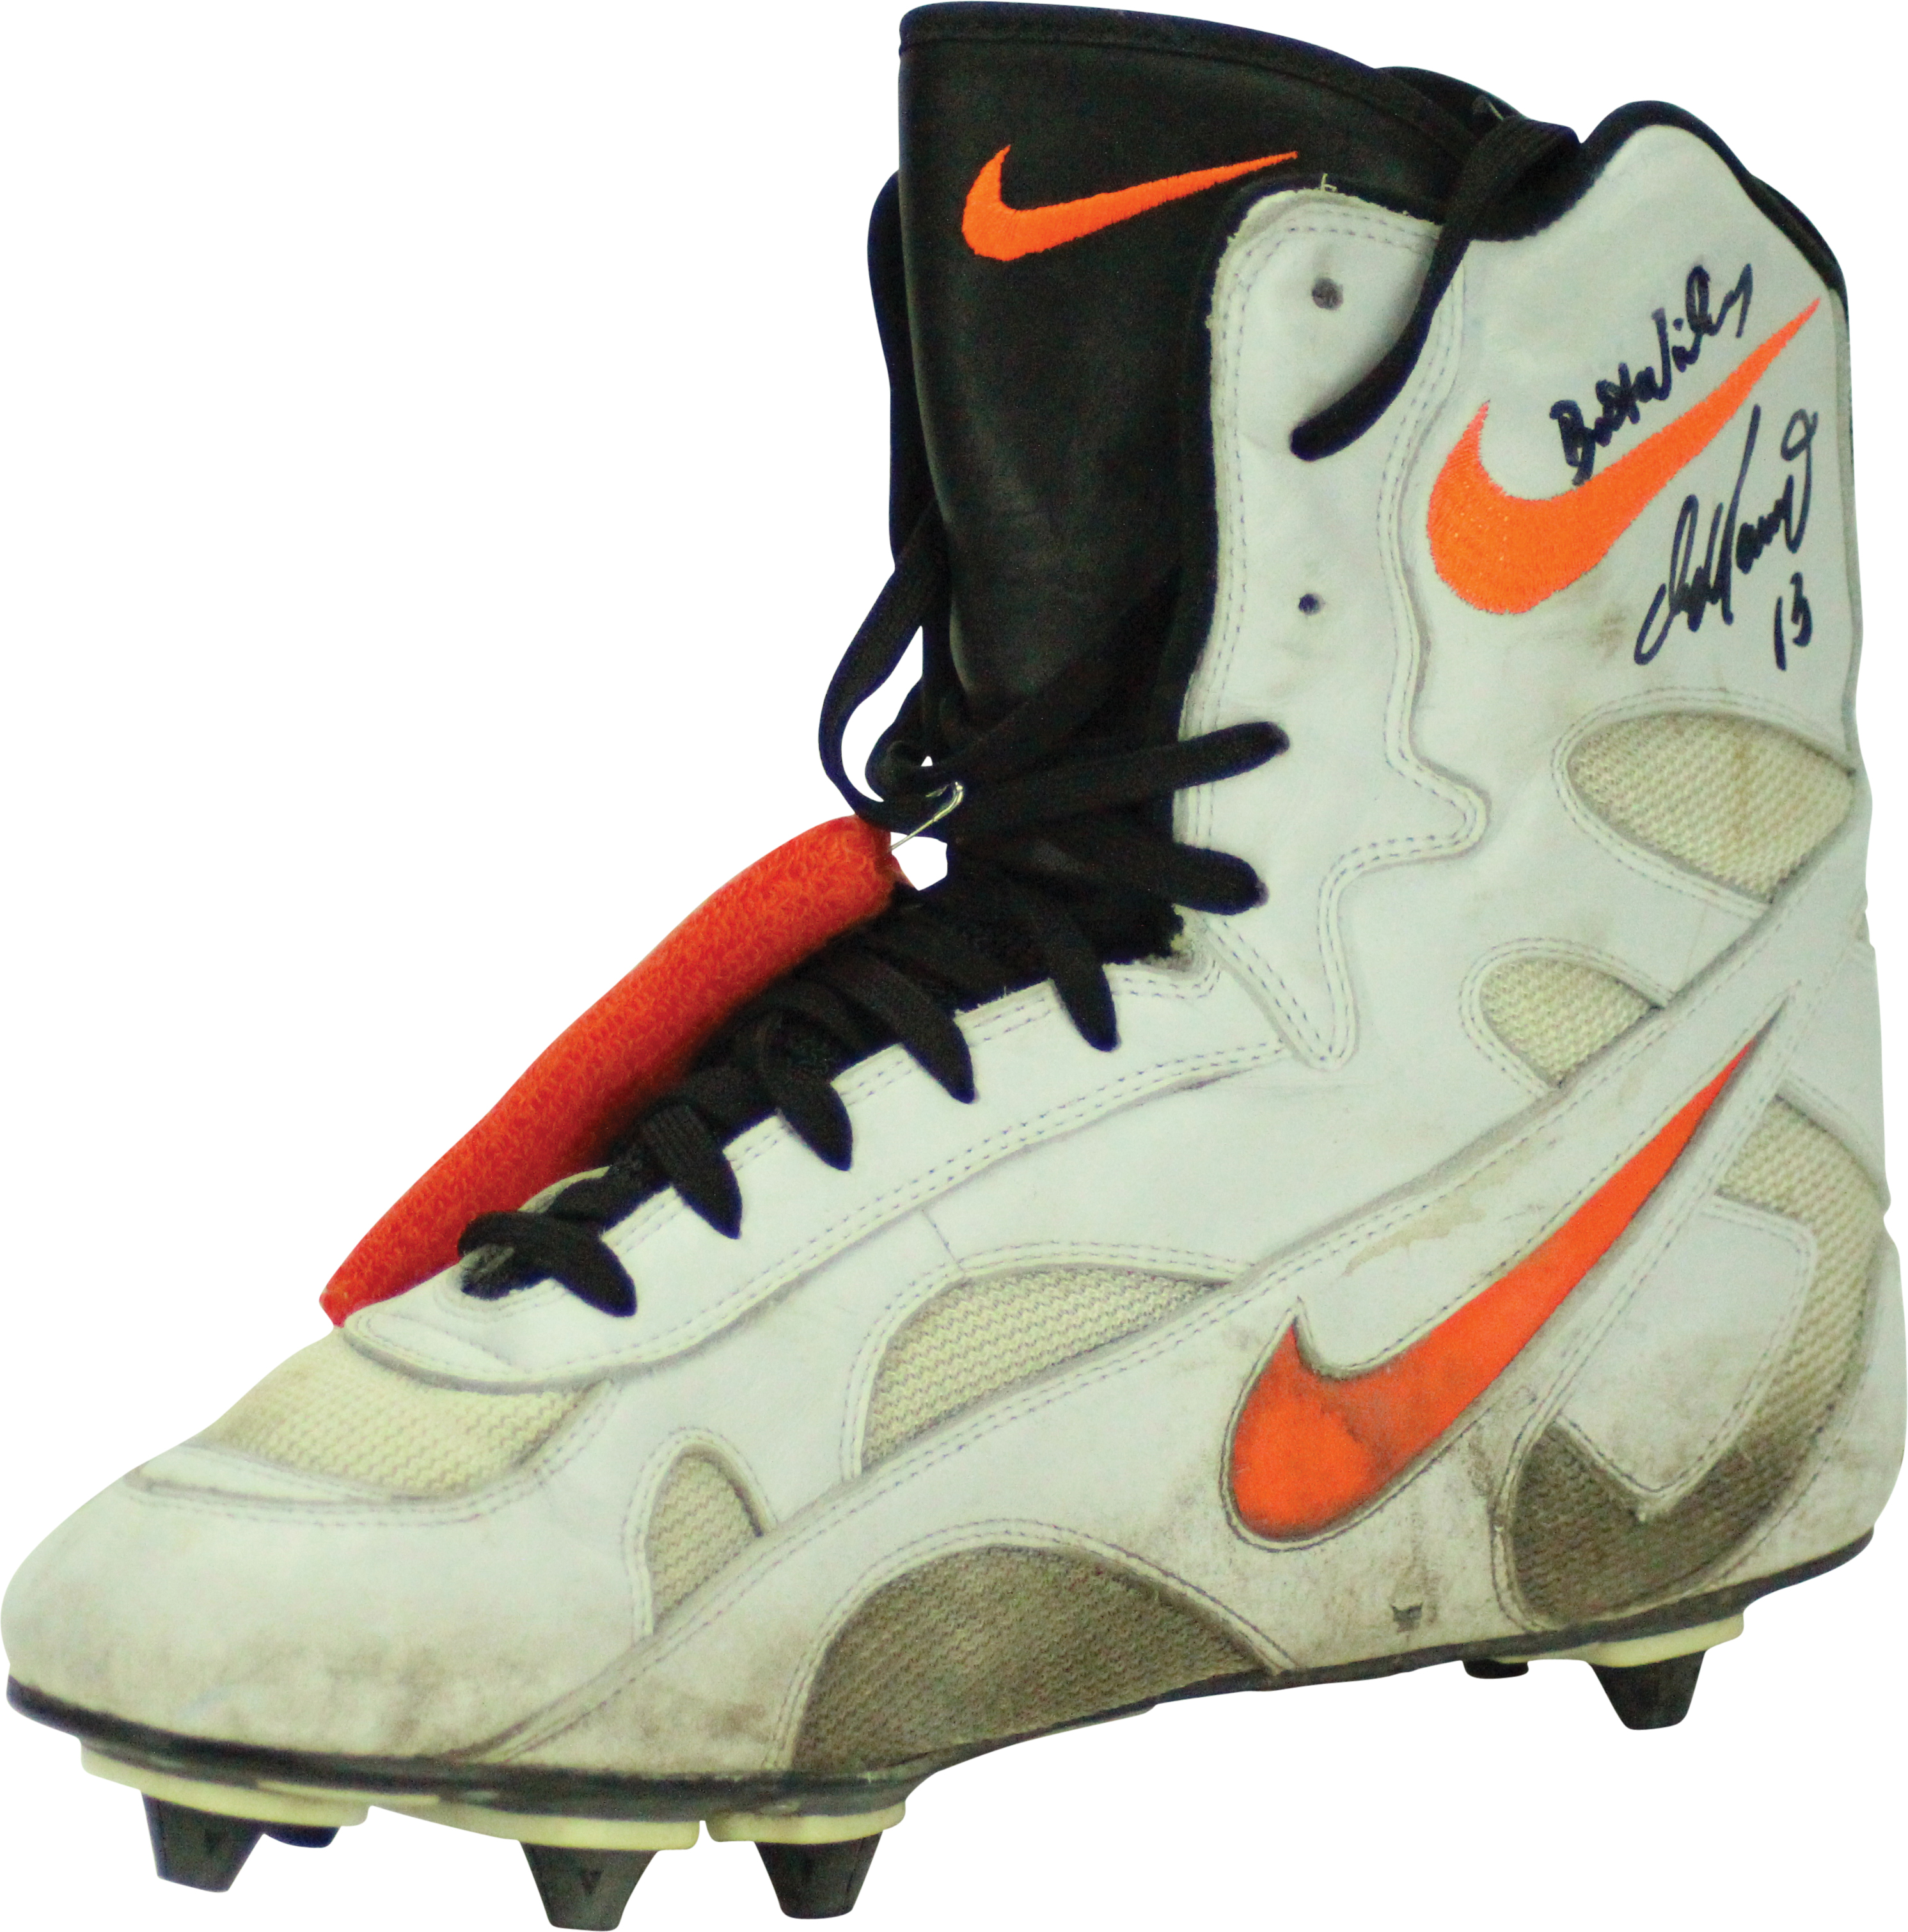 ada9f8c245 ... Dan Marino Miami Dolphins Game Used Worn and Hand Signed Custom Made  Nike Football Cleats and ...